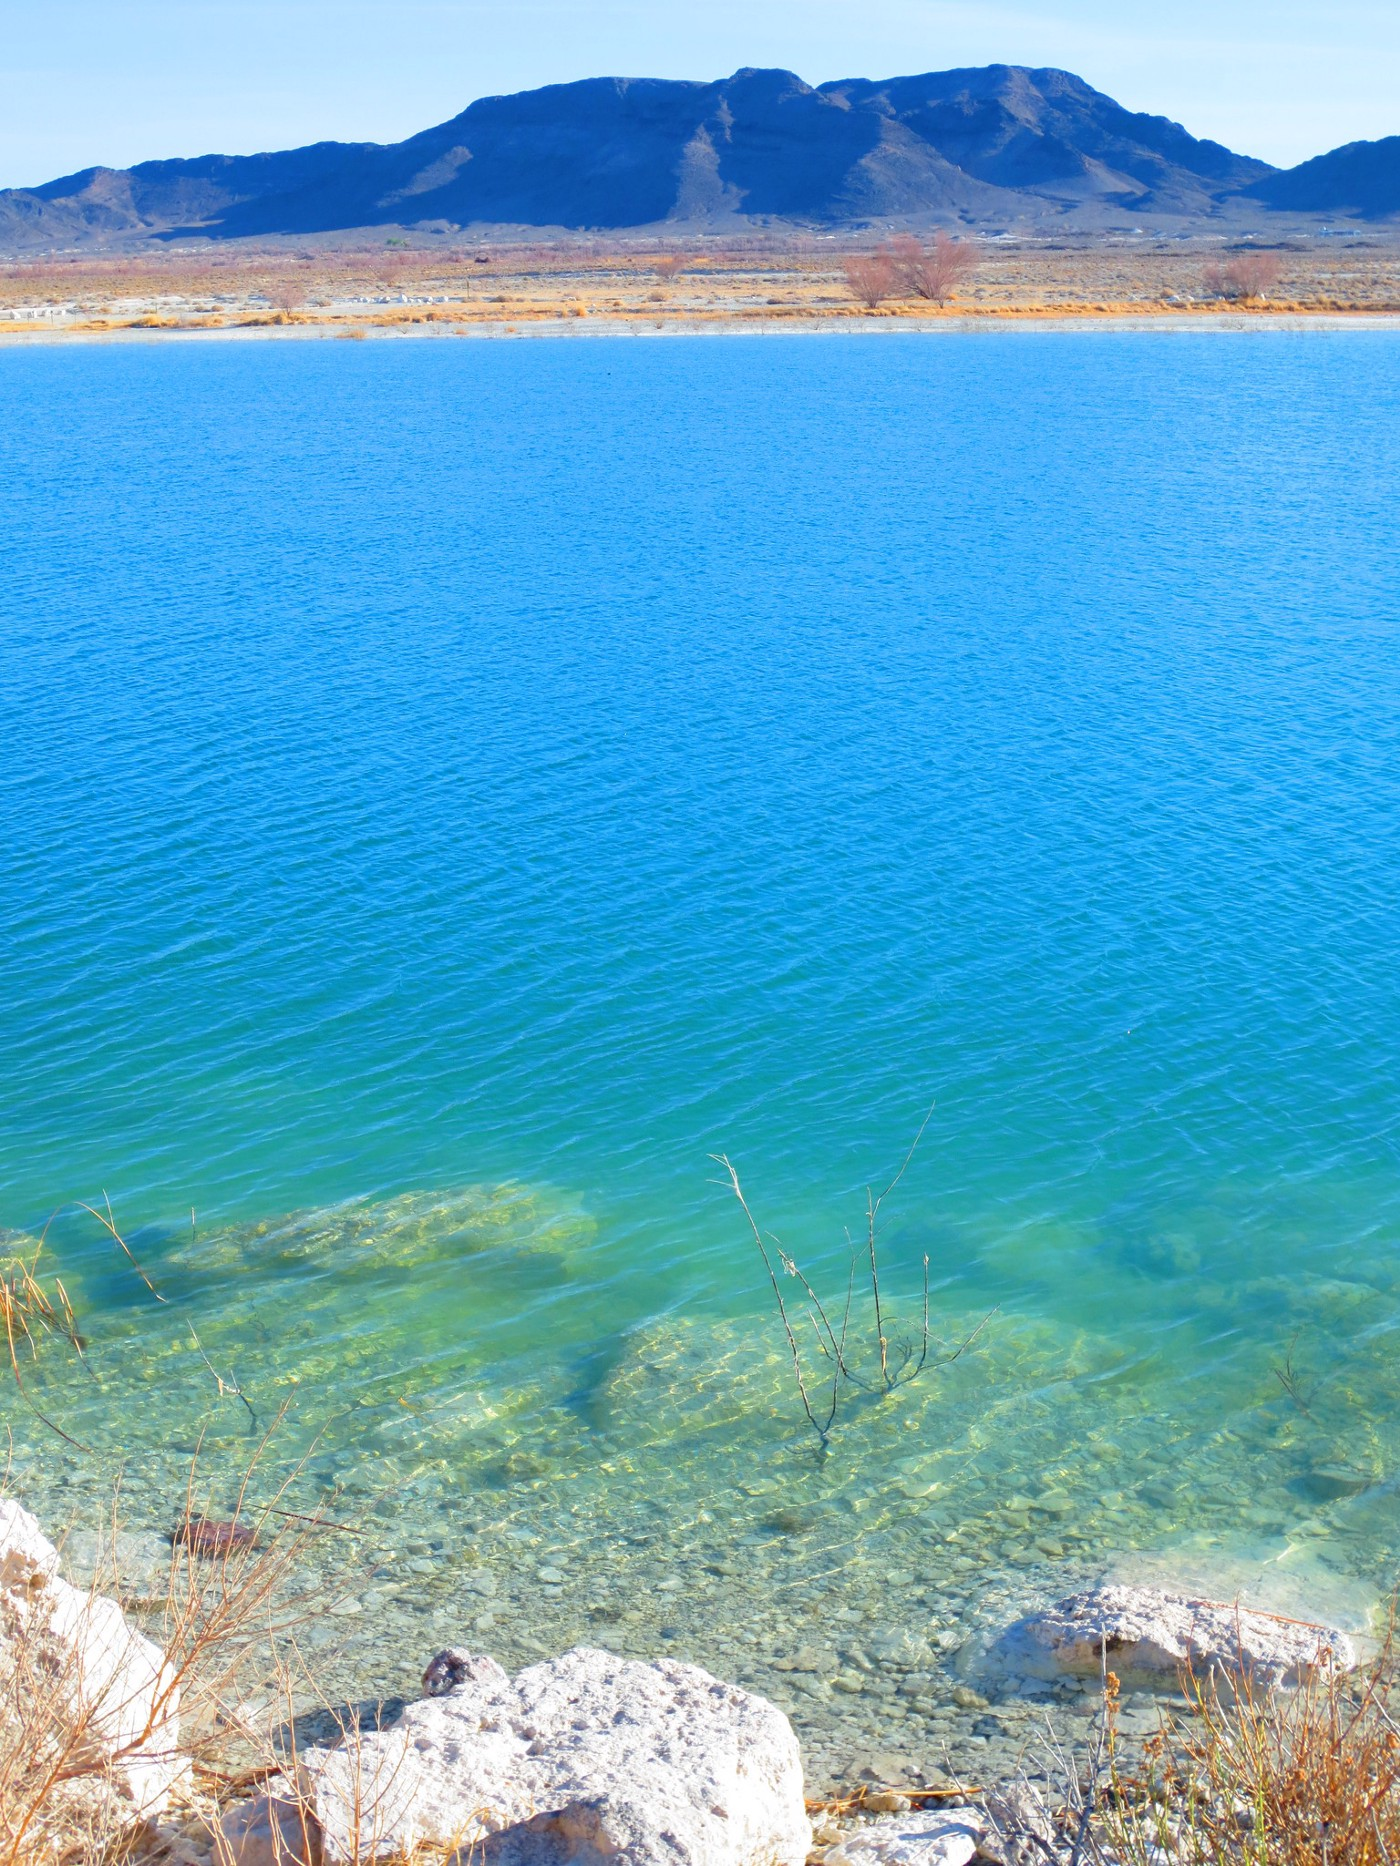 a lake featuring crystal blue water